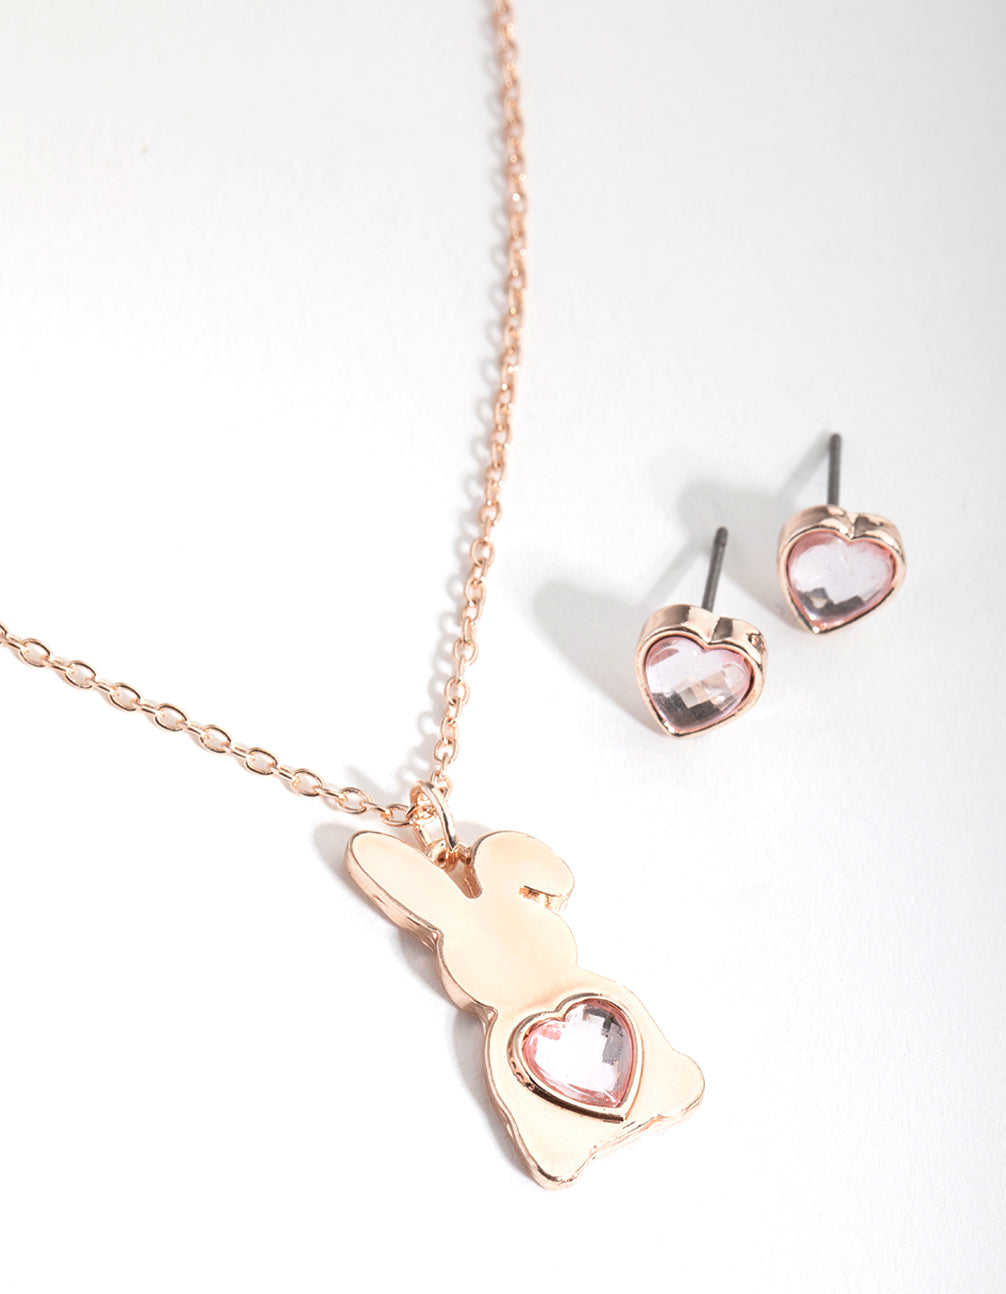 Heart Bunny Gift Box Necklace and Earring Set